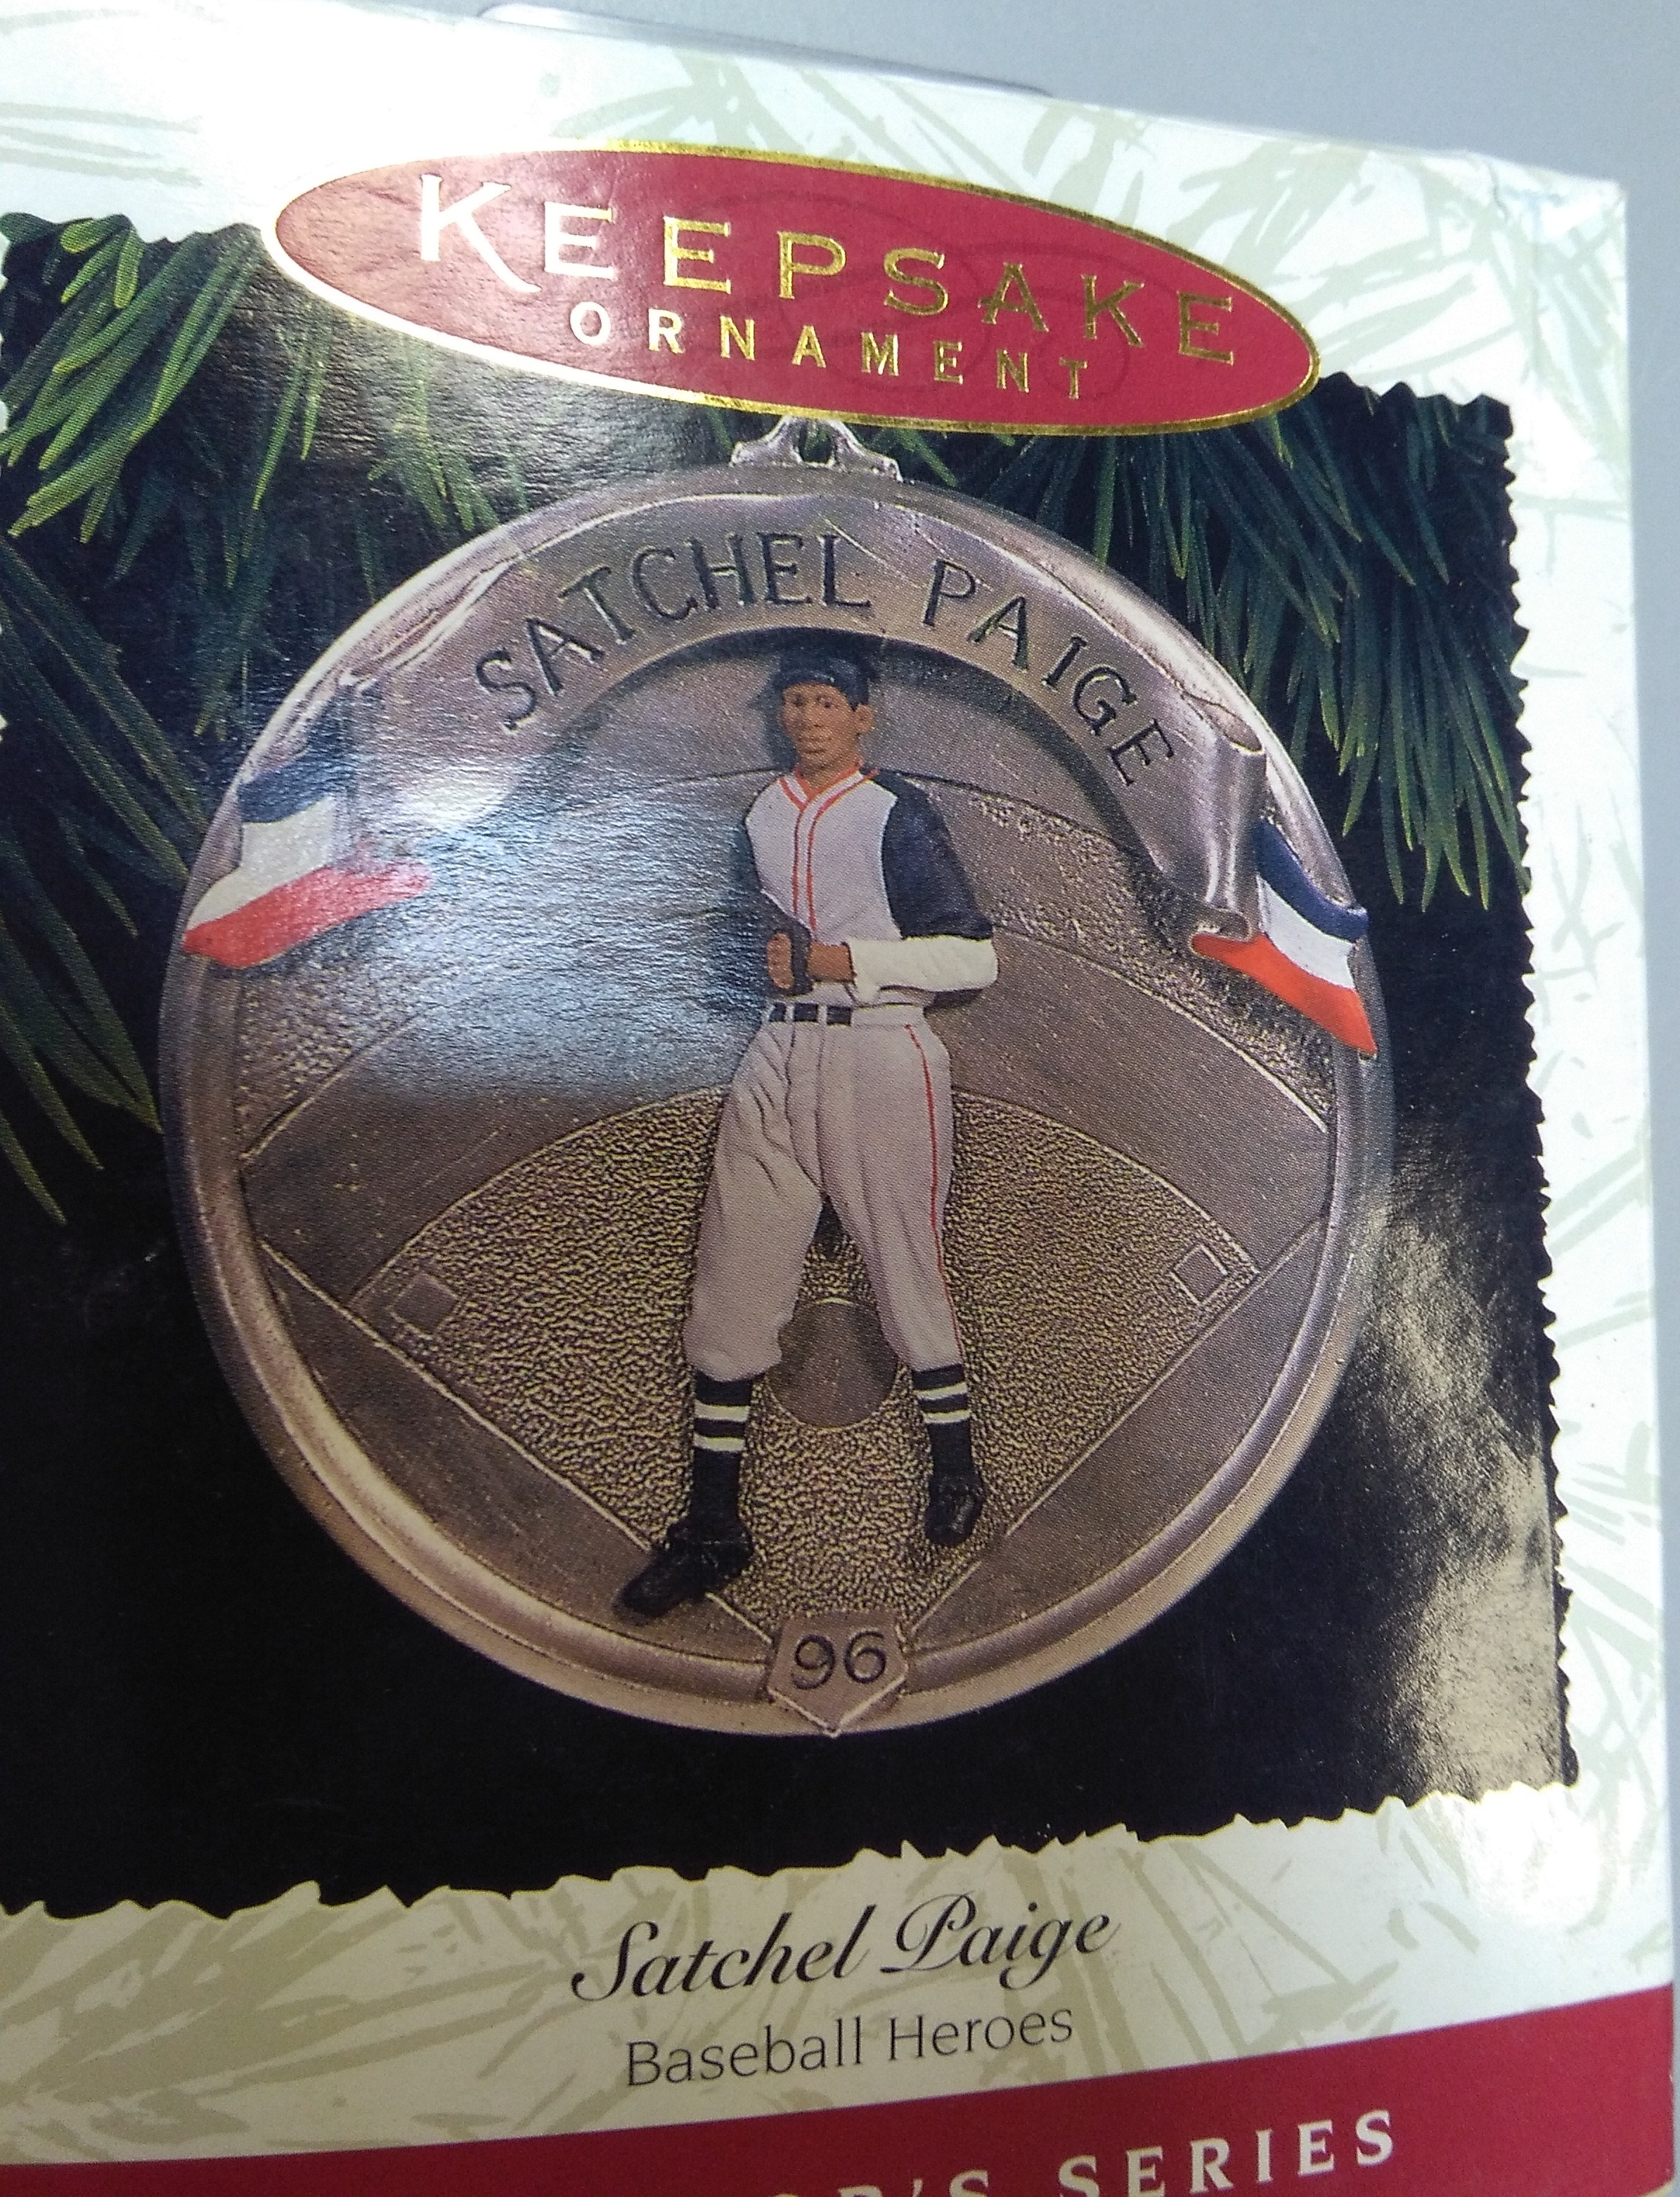 Satchel Paige Christmas Ornament